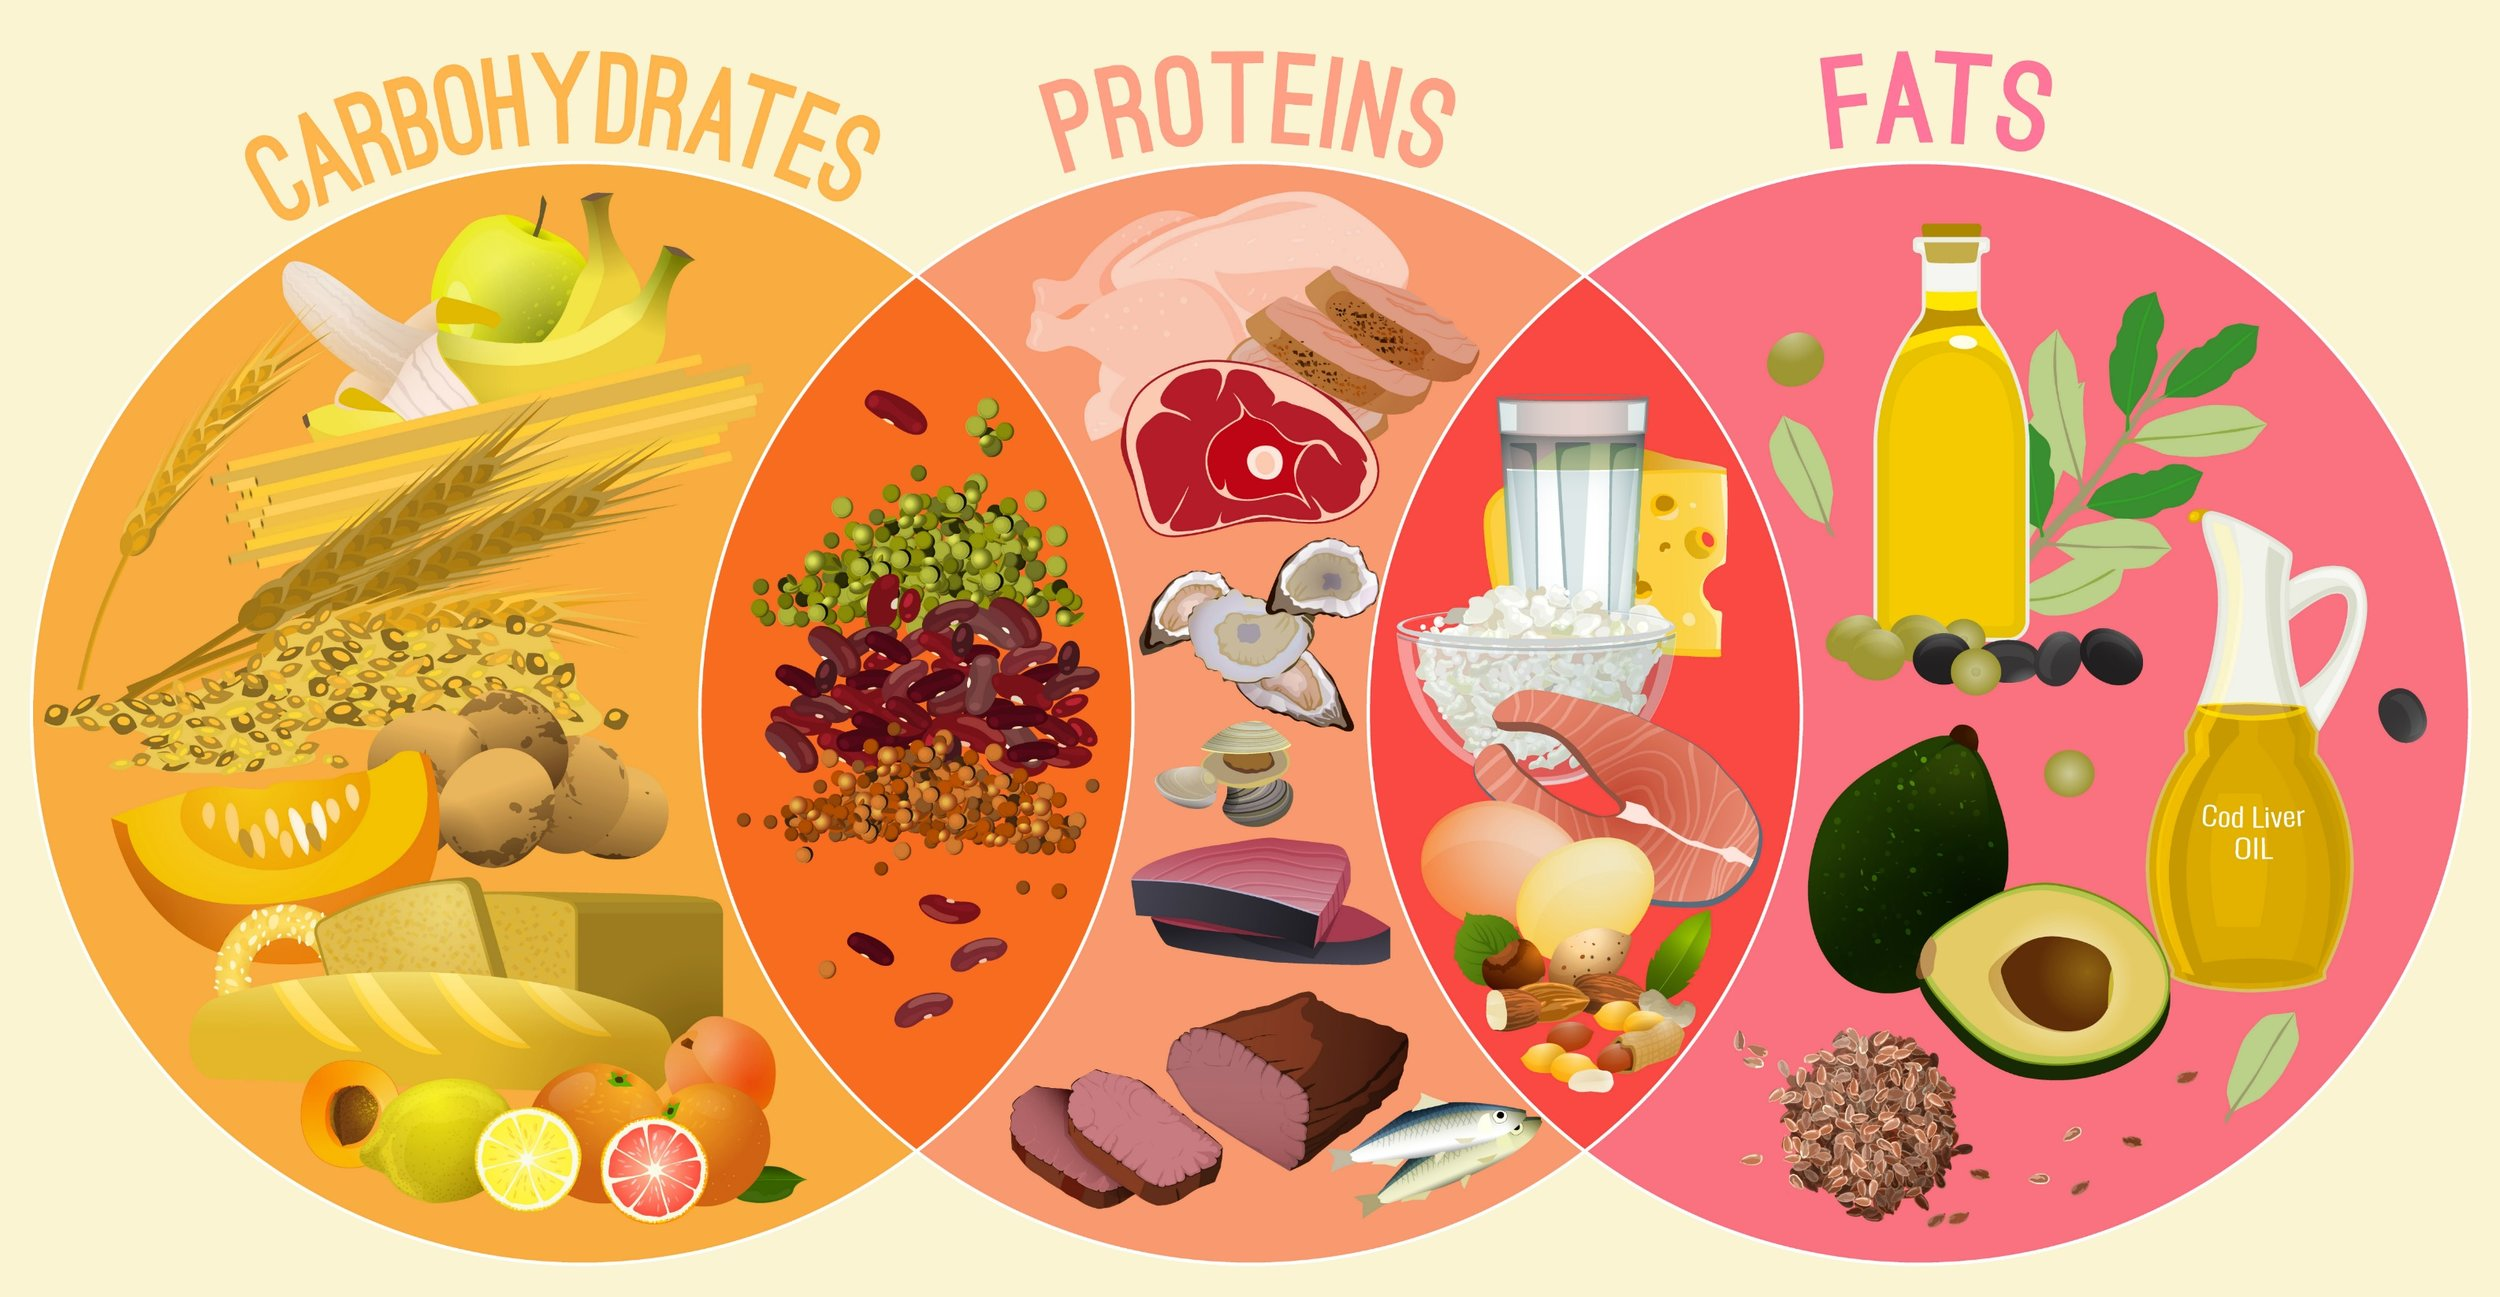 The foods we eat contain carbohydrates, proteins, and fats. Digestion breaks down carbohydrates into glucose molecules, proteins into amino acids, and fats into fatty acids. Our cells convert the chemical energy from glucose, amino acids, and fatty acids into mechanical energy and heat.